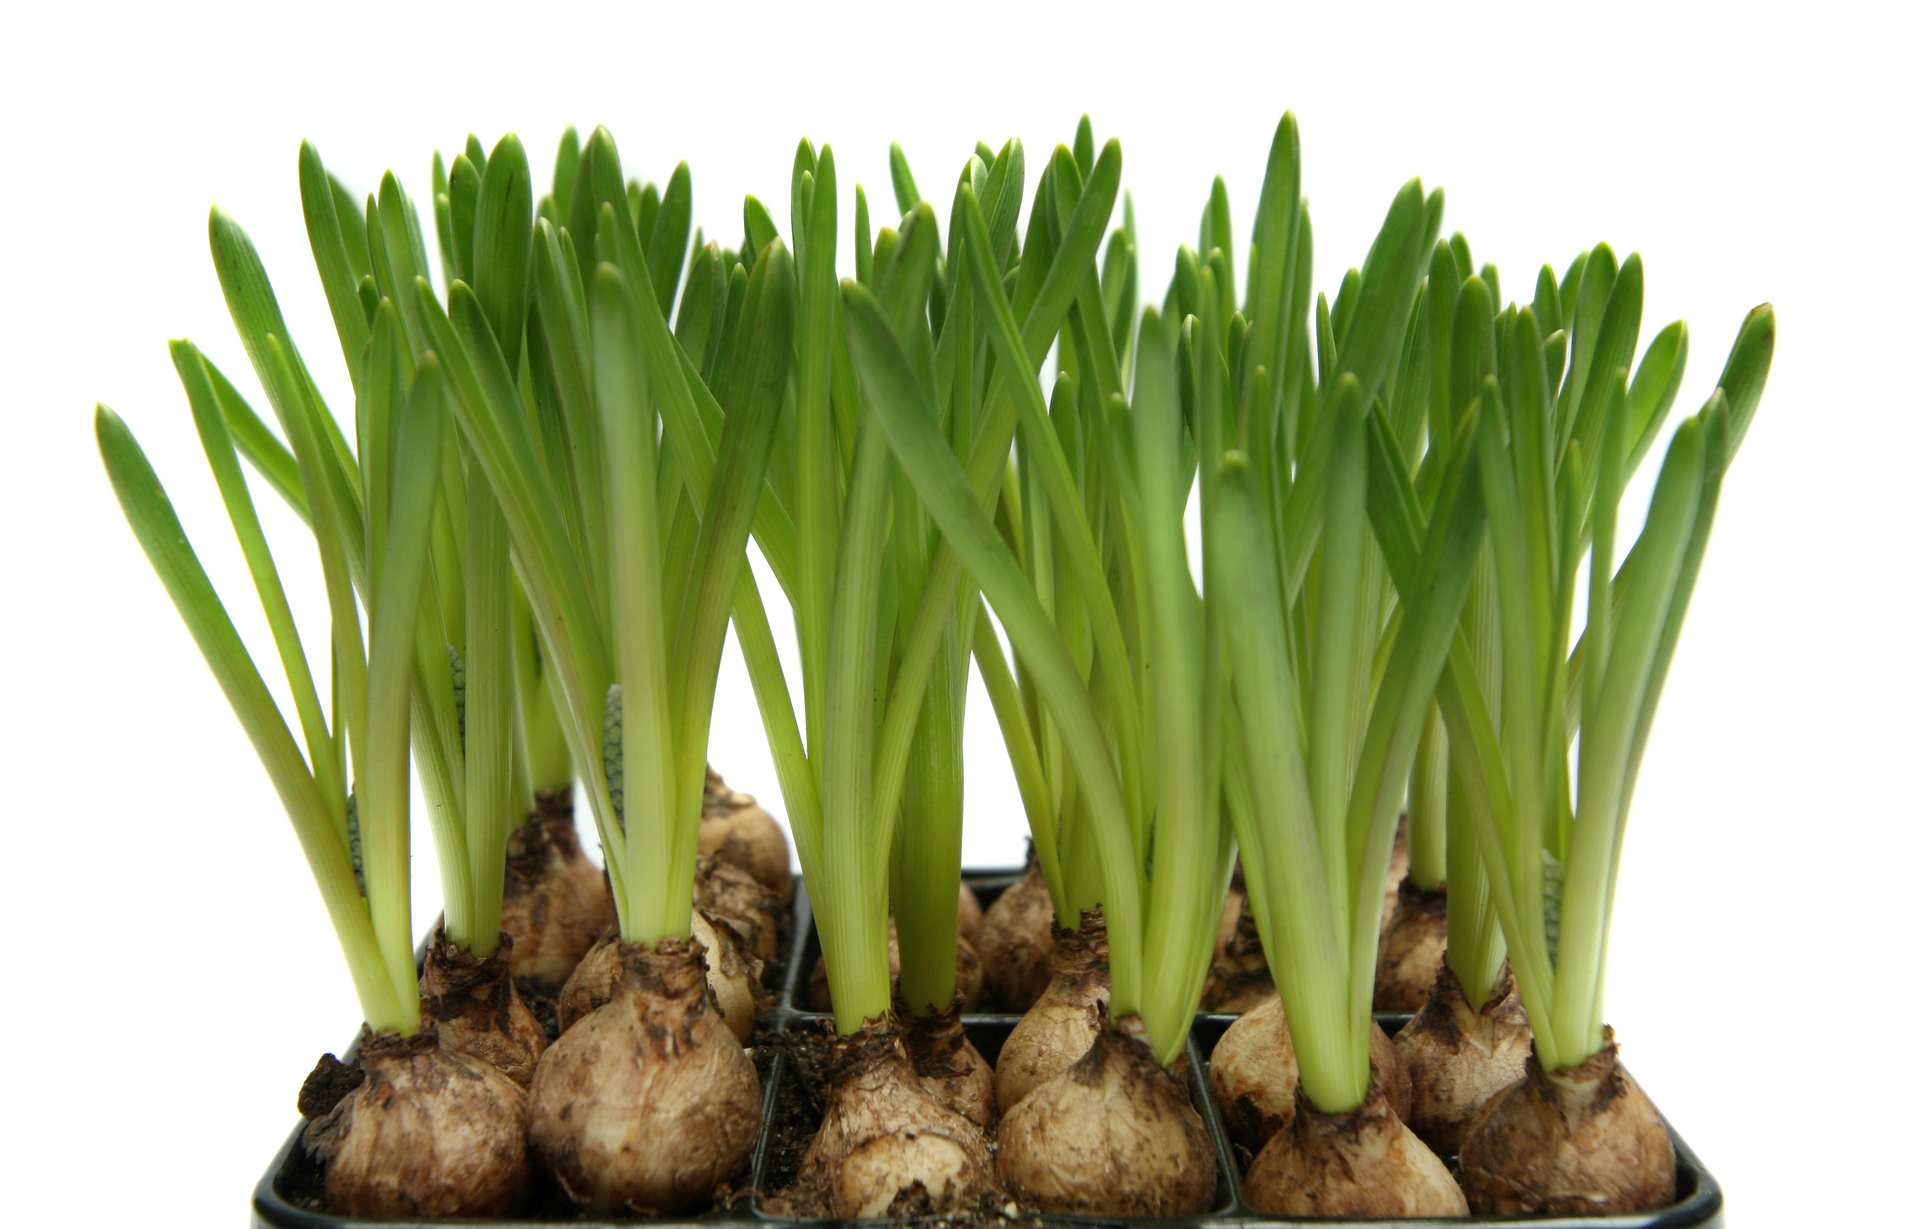 Growing flower bulbs in container gardens